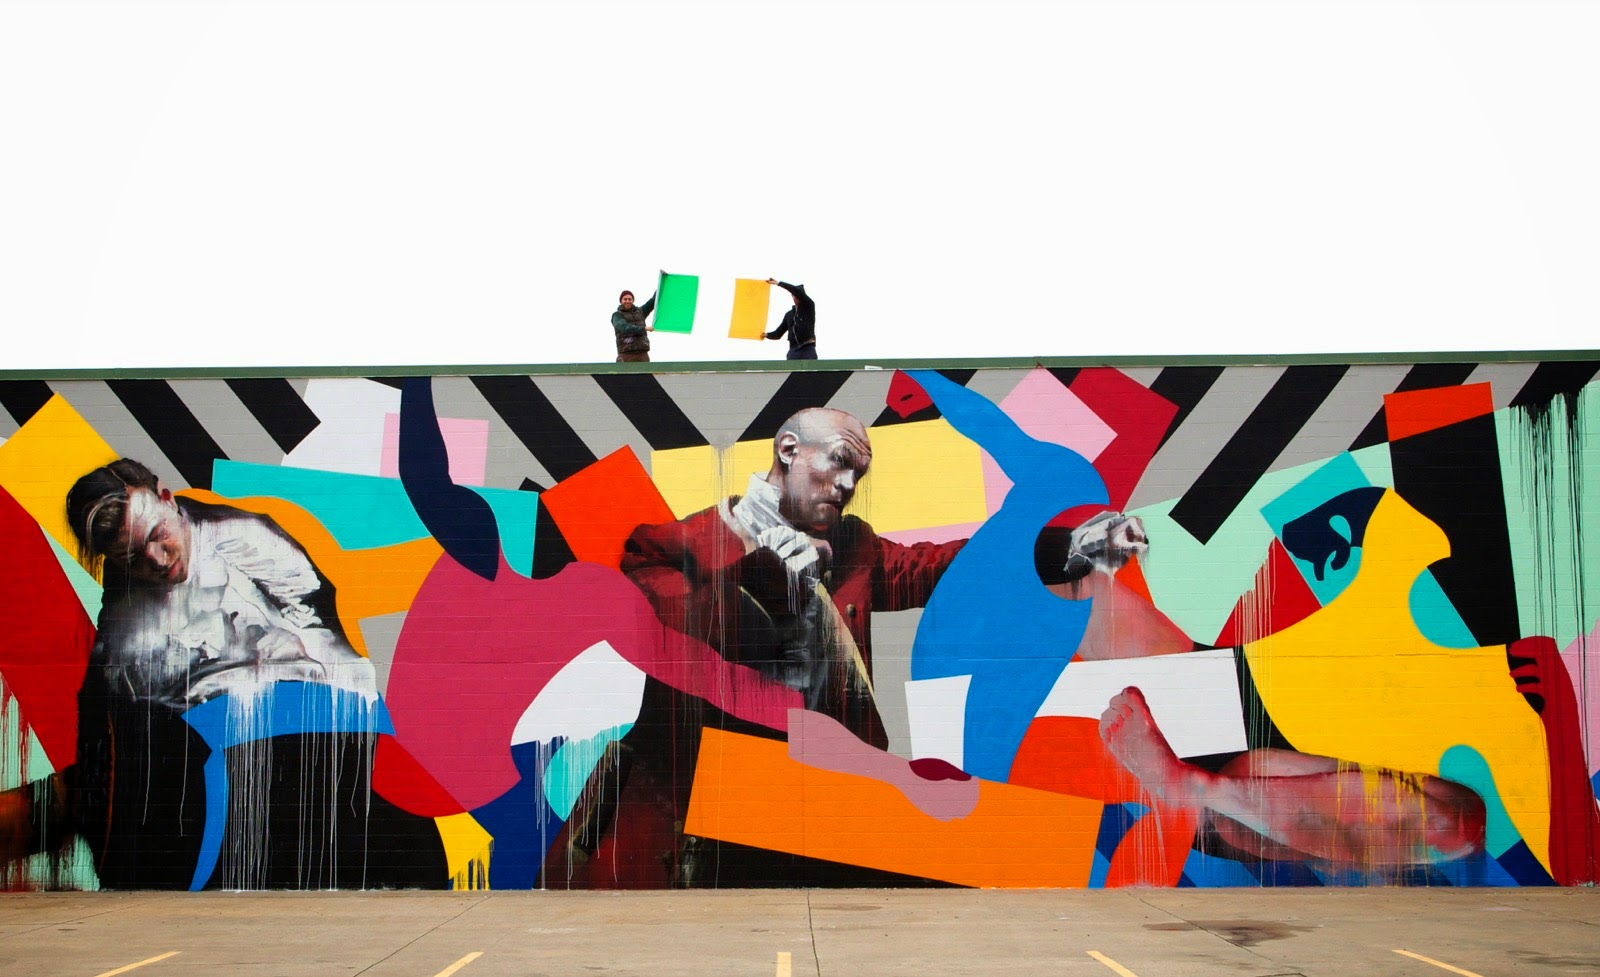 Conor Harrington is currently in Fort Smith, Arkansas where he just finished working on this epic collaboration with Maser.